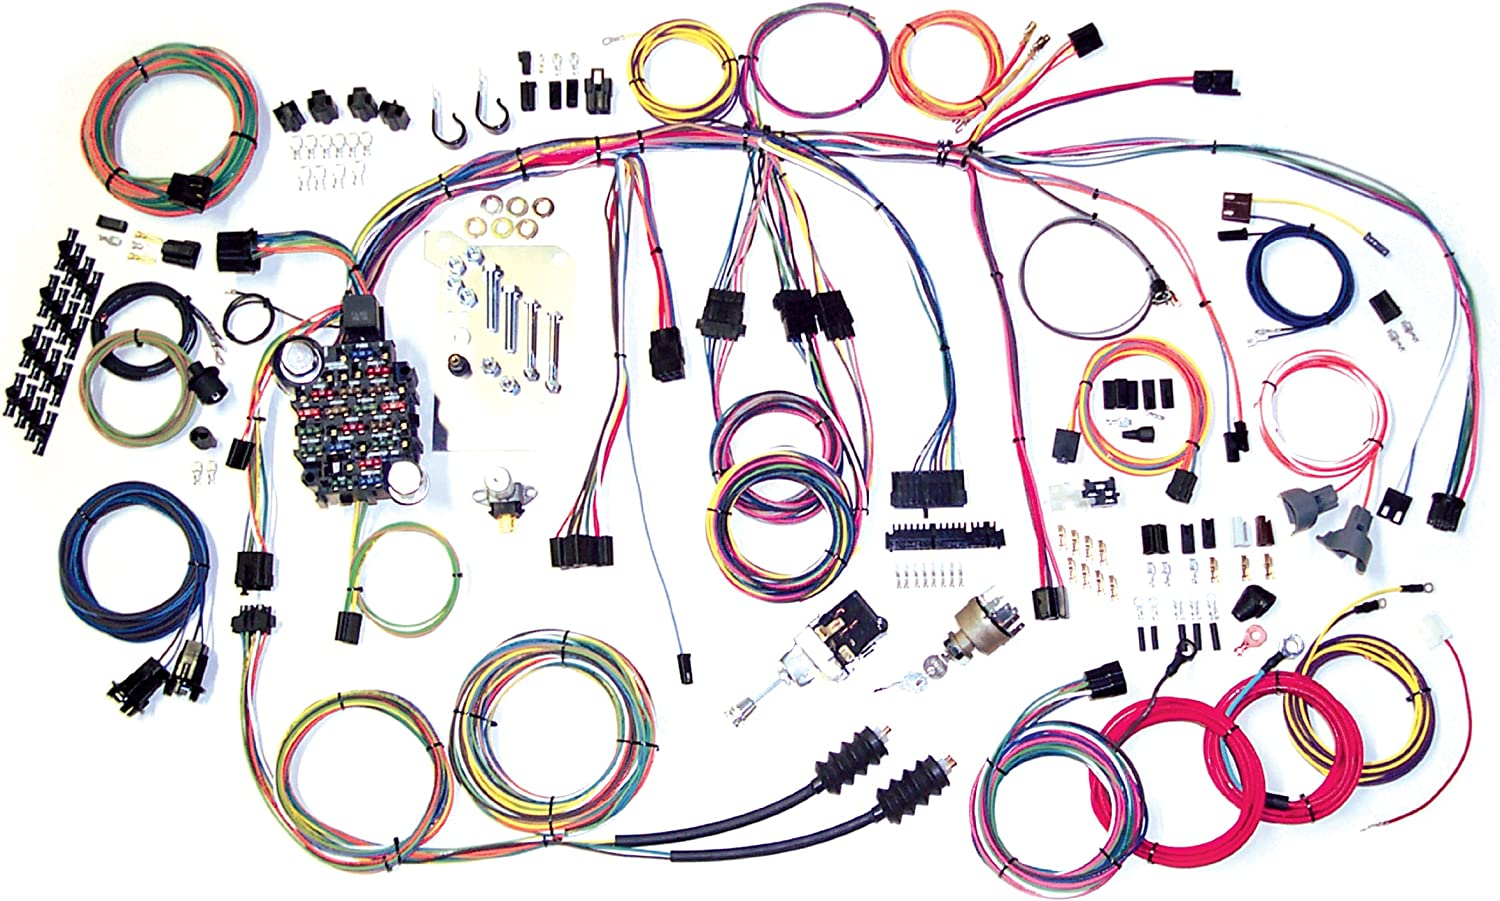 American Autowire Mesa Mall 500560 Truck Wiring Harness Max 69% OFF Chevy for 60-66